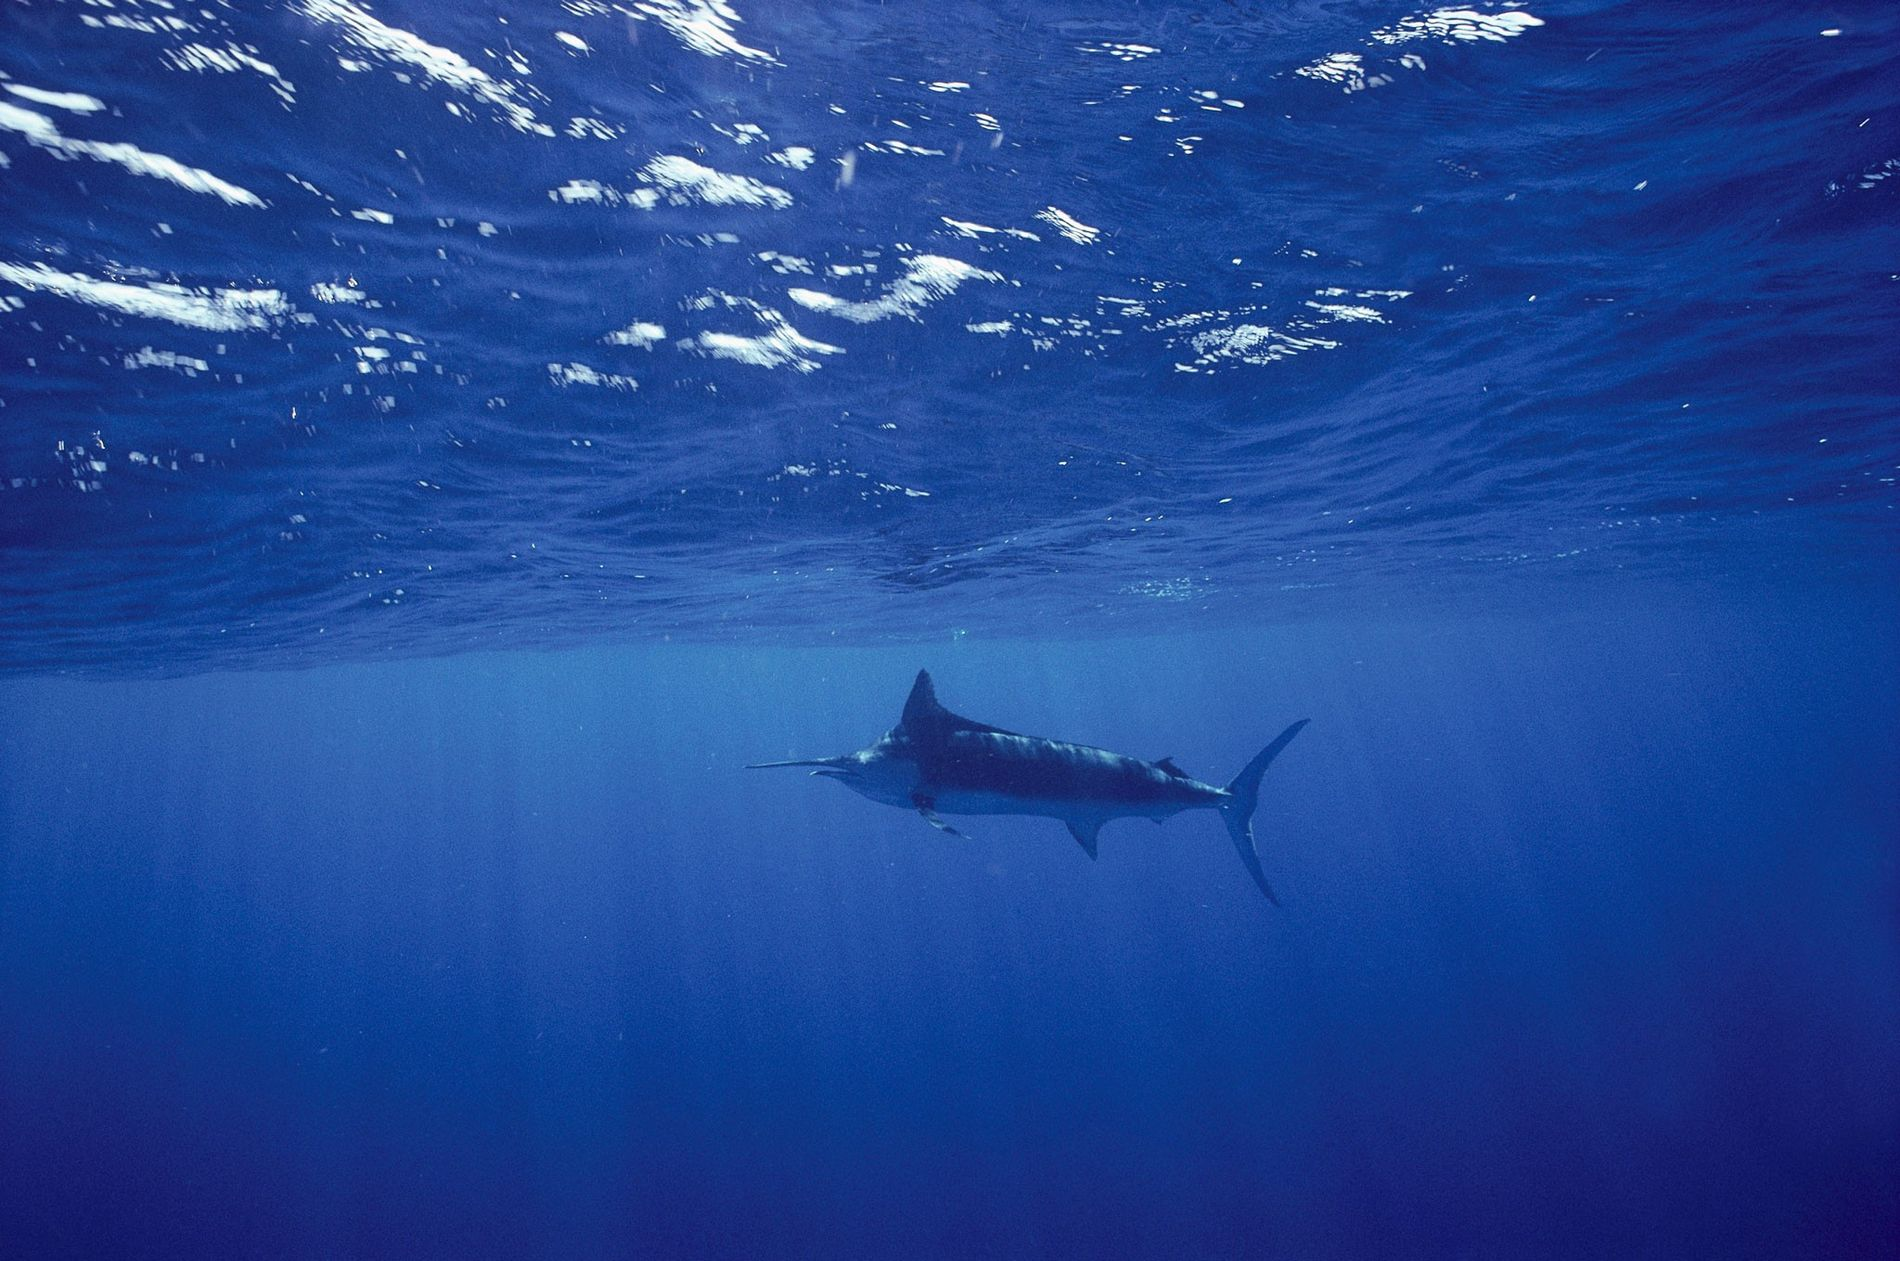 A blue marlin swims in the Sea of Cortez off Baja California. Marlin are among the fish that are crowding toward the surface in some parts of the ocean as they flee low-oxygen zones in the deep.